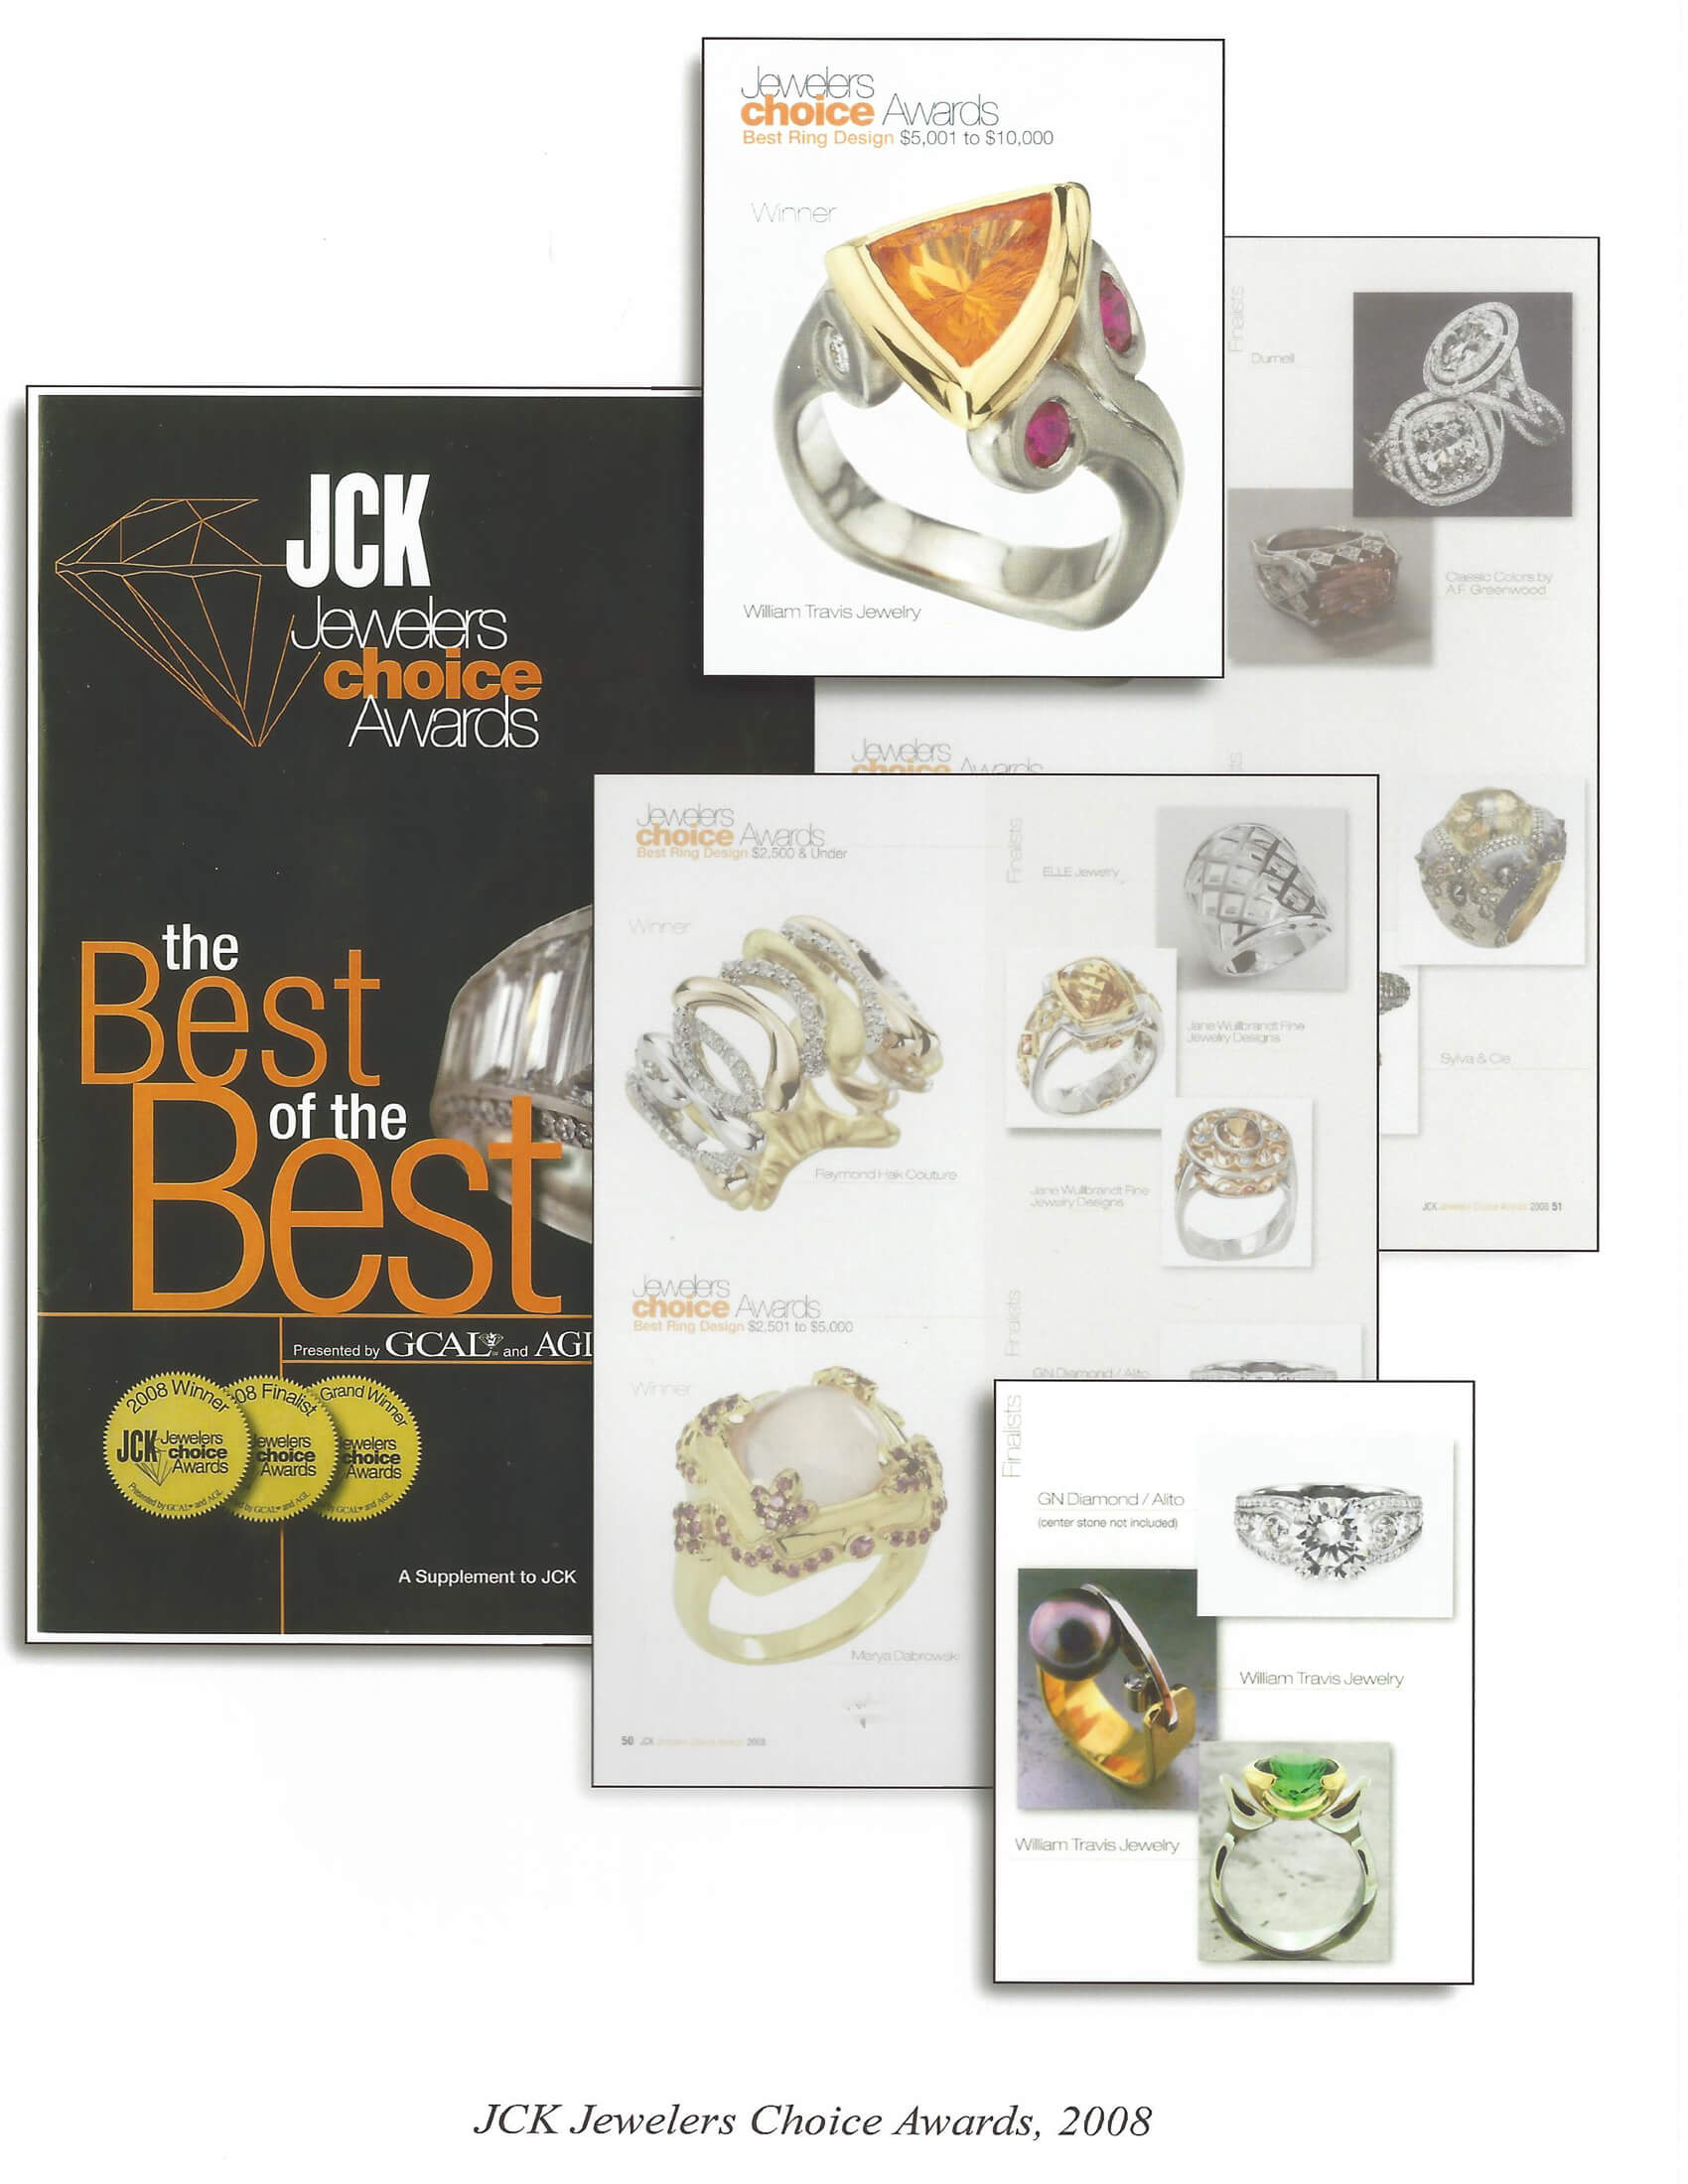 JCK The best of the best 2008